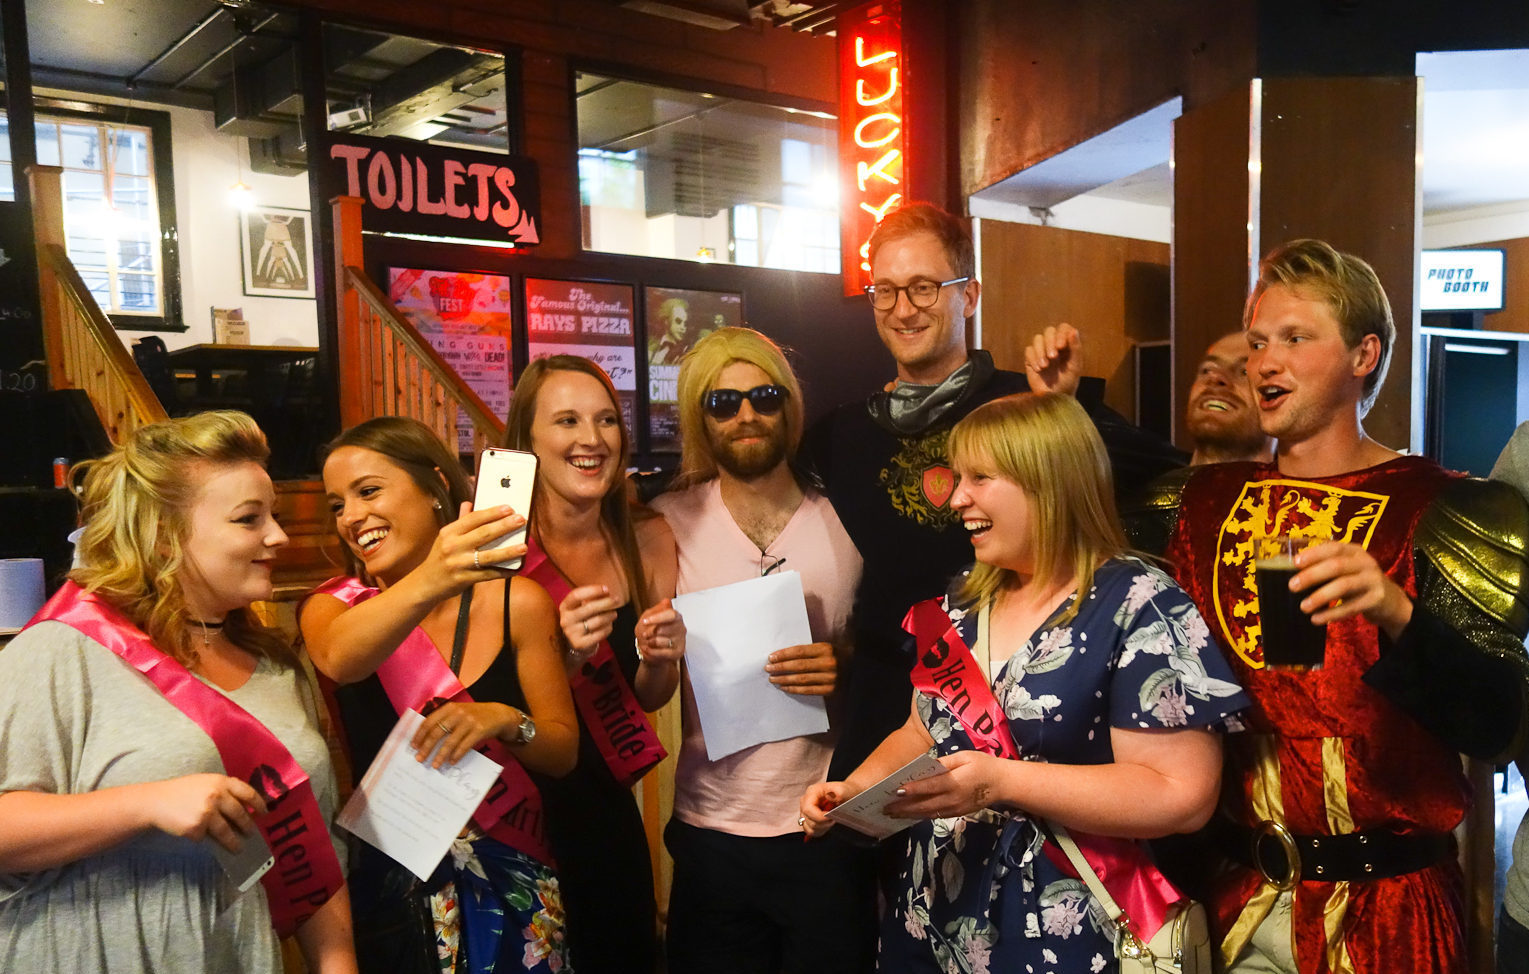 Discussion on this topic: Hen Dos Are Getting Out Of Control: , hen-dos-are-getting-out-of-control/